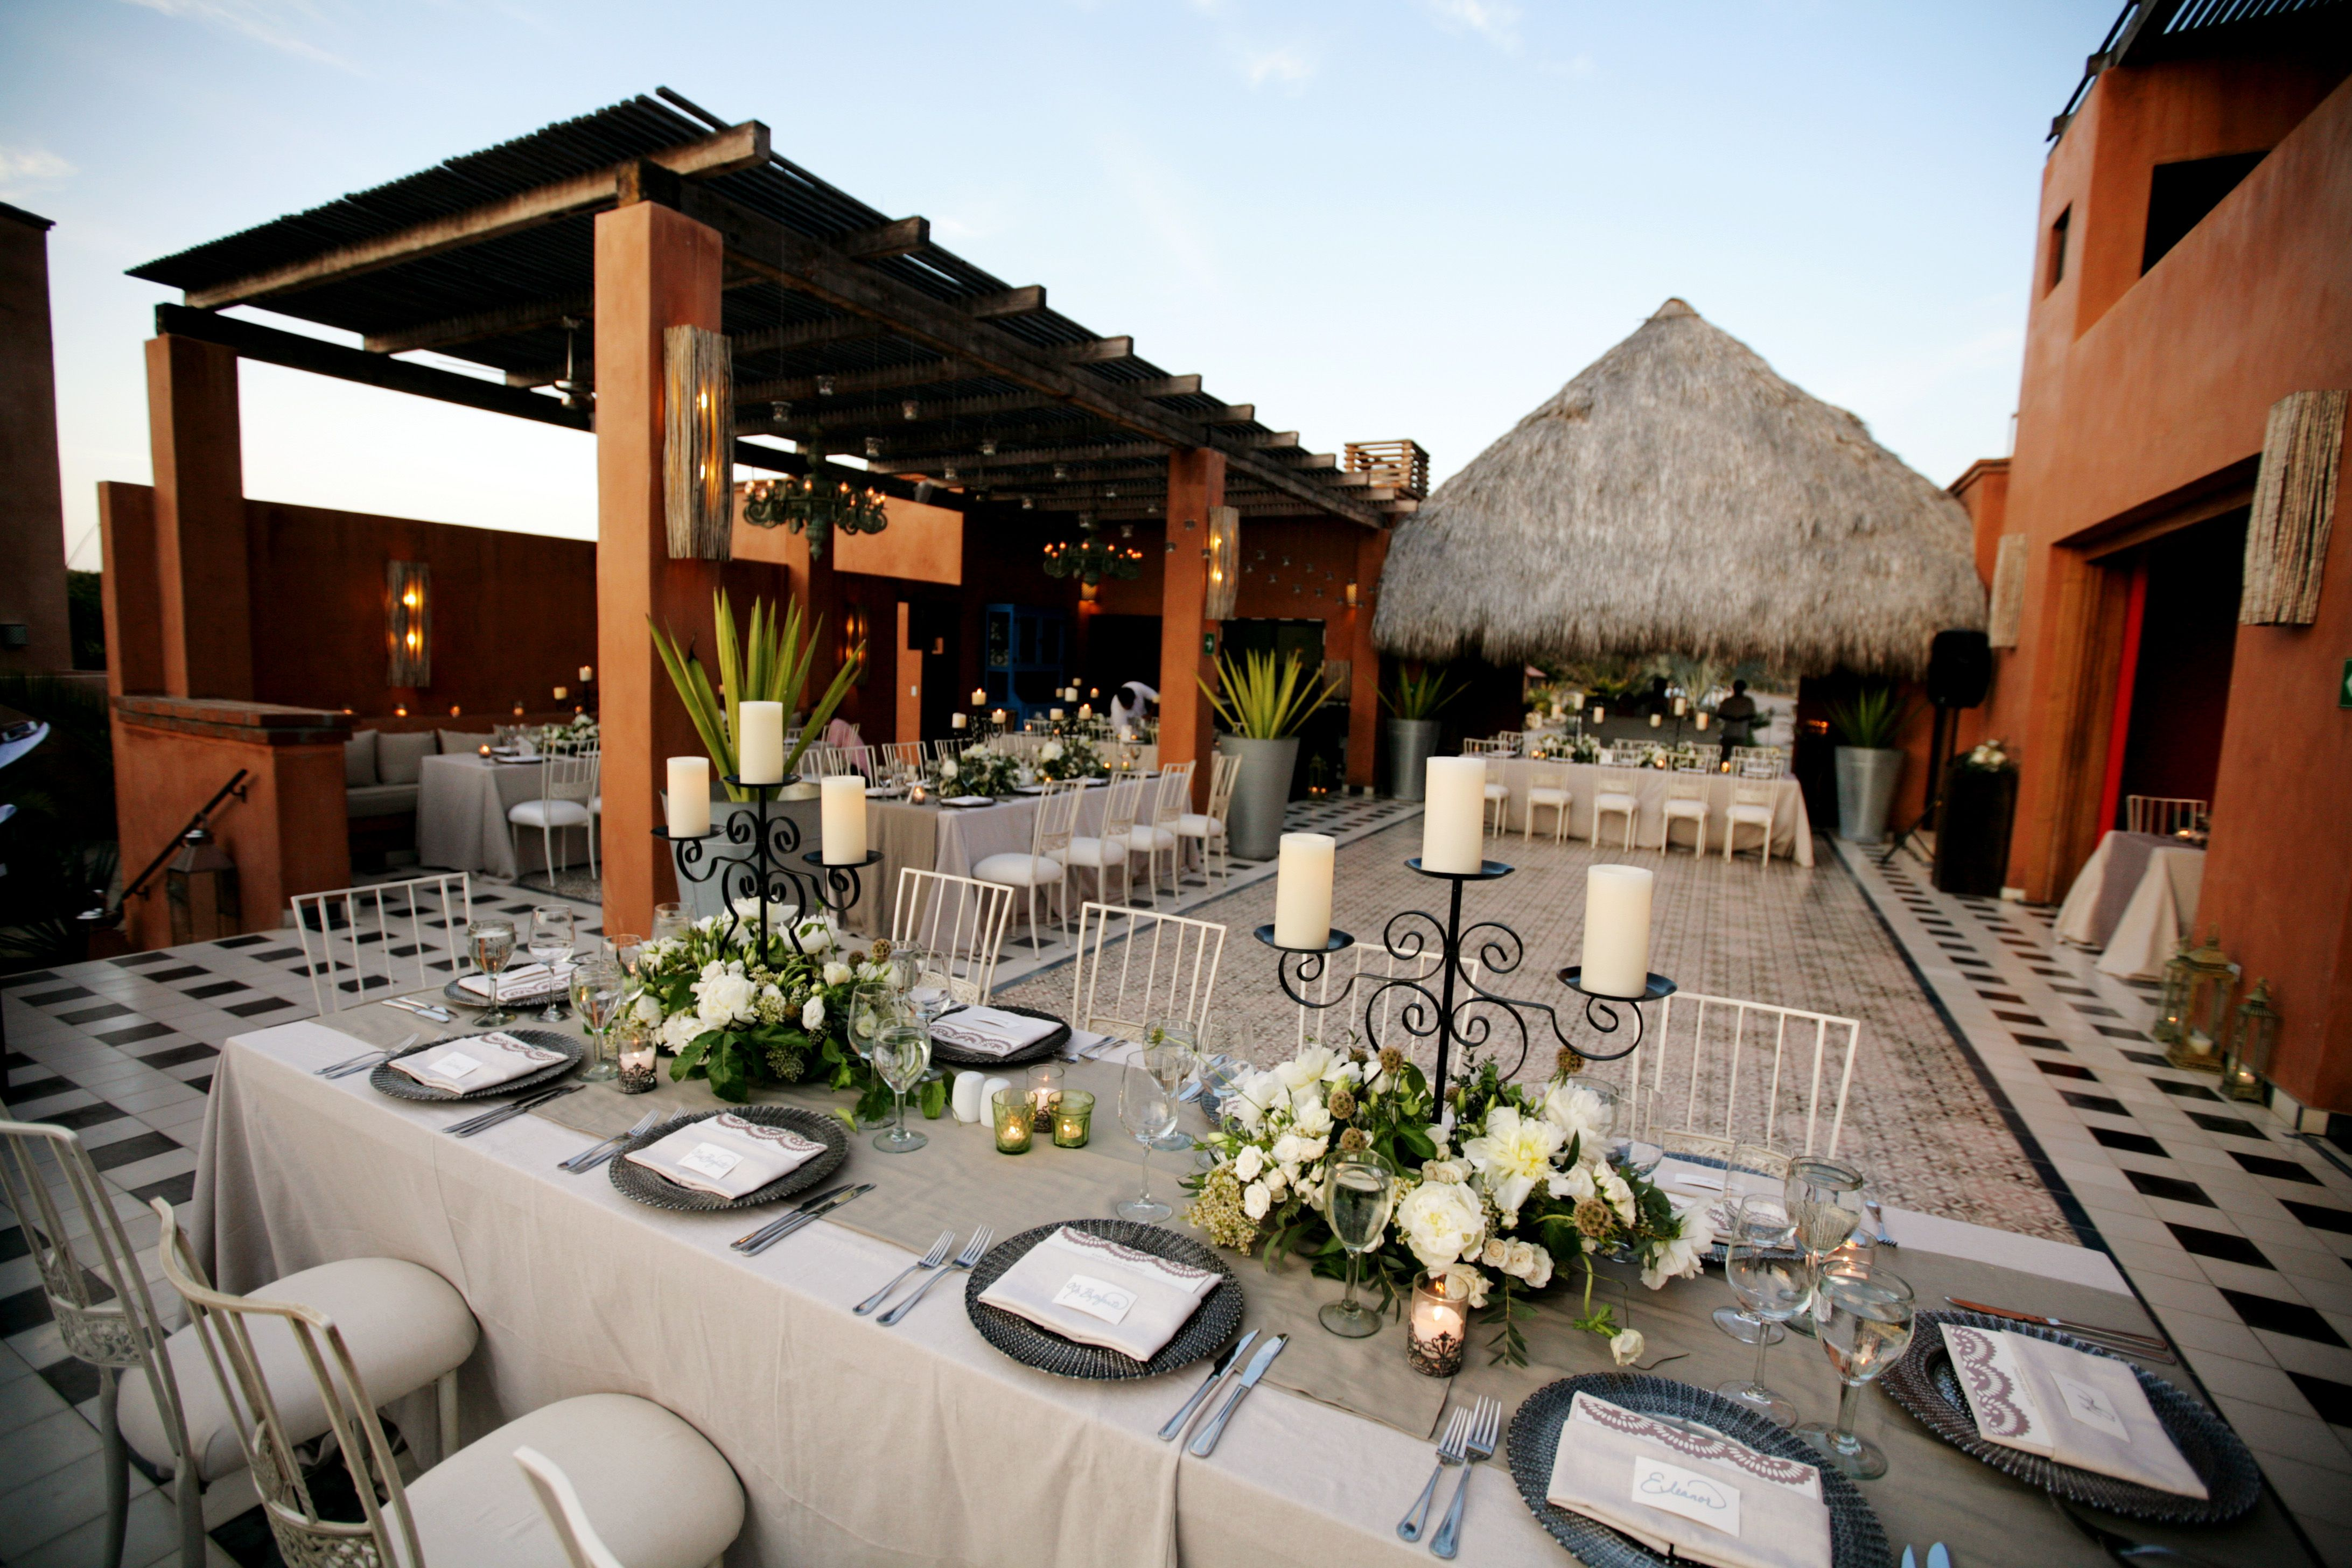 Explore Table Toppers Wedding Locations And More